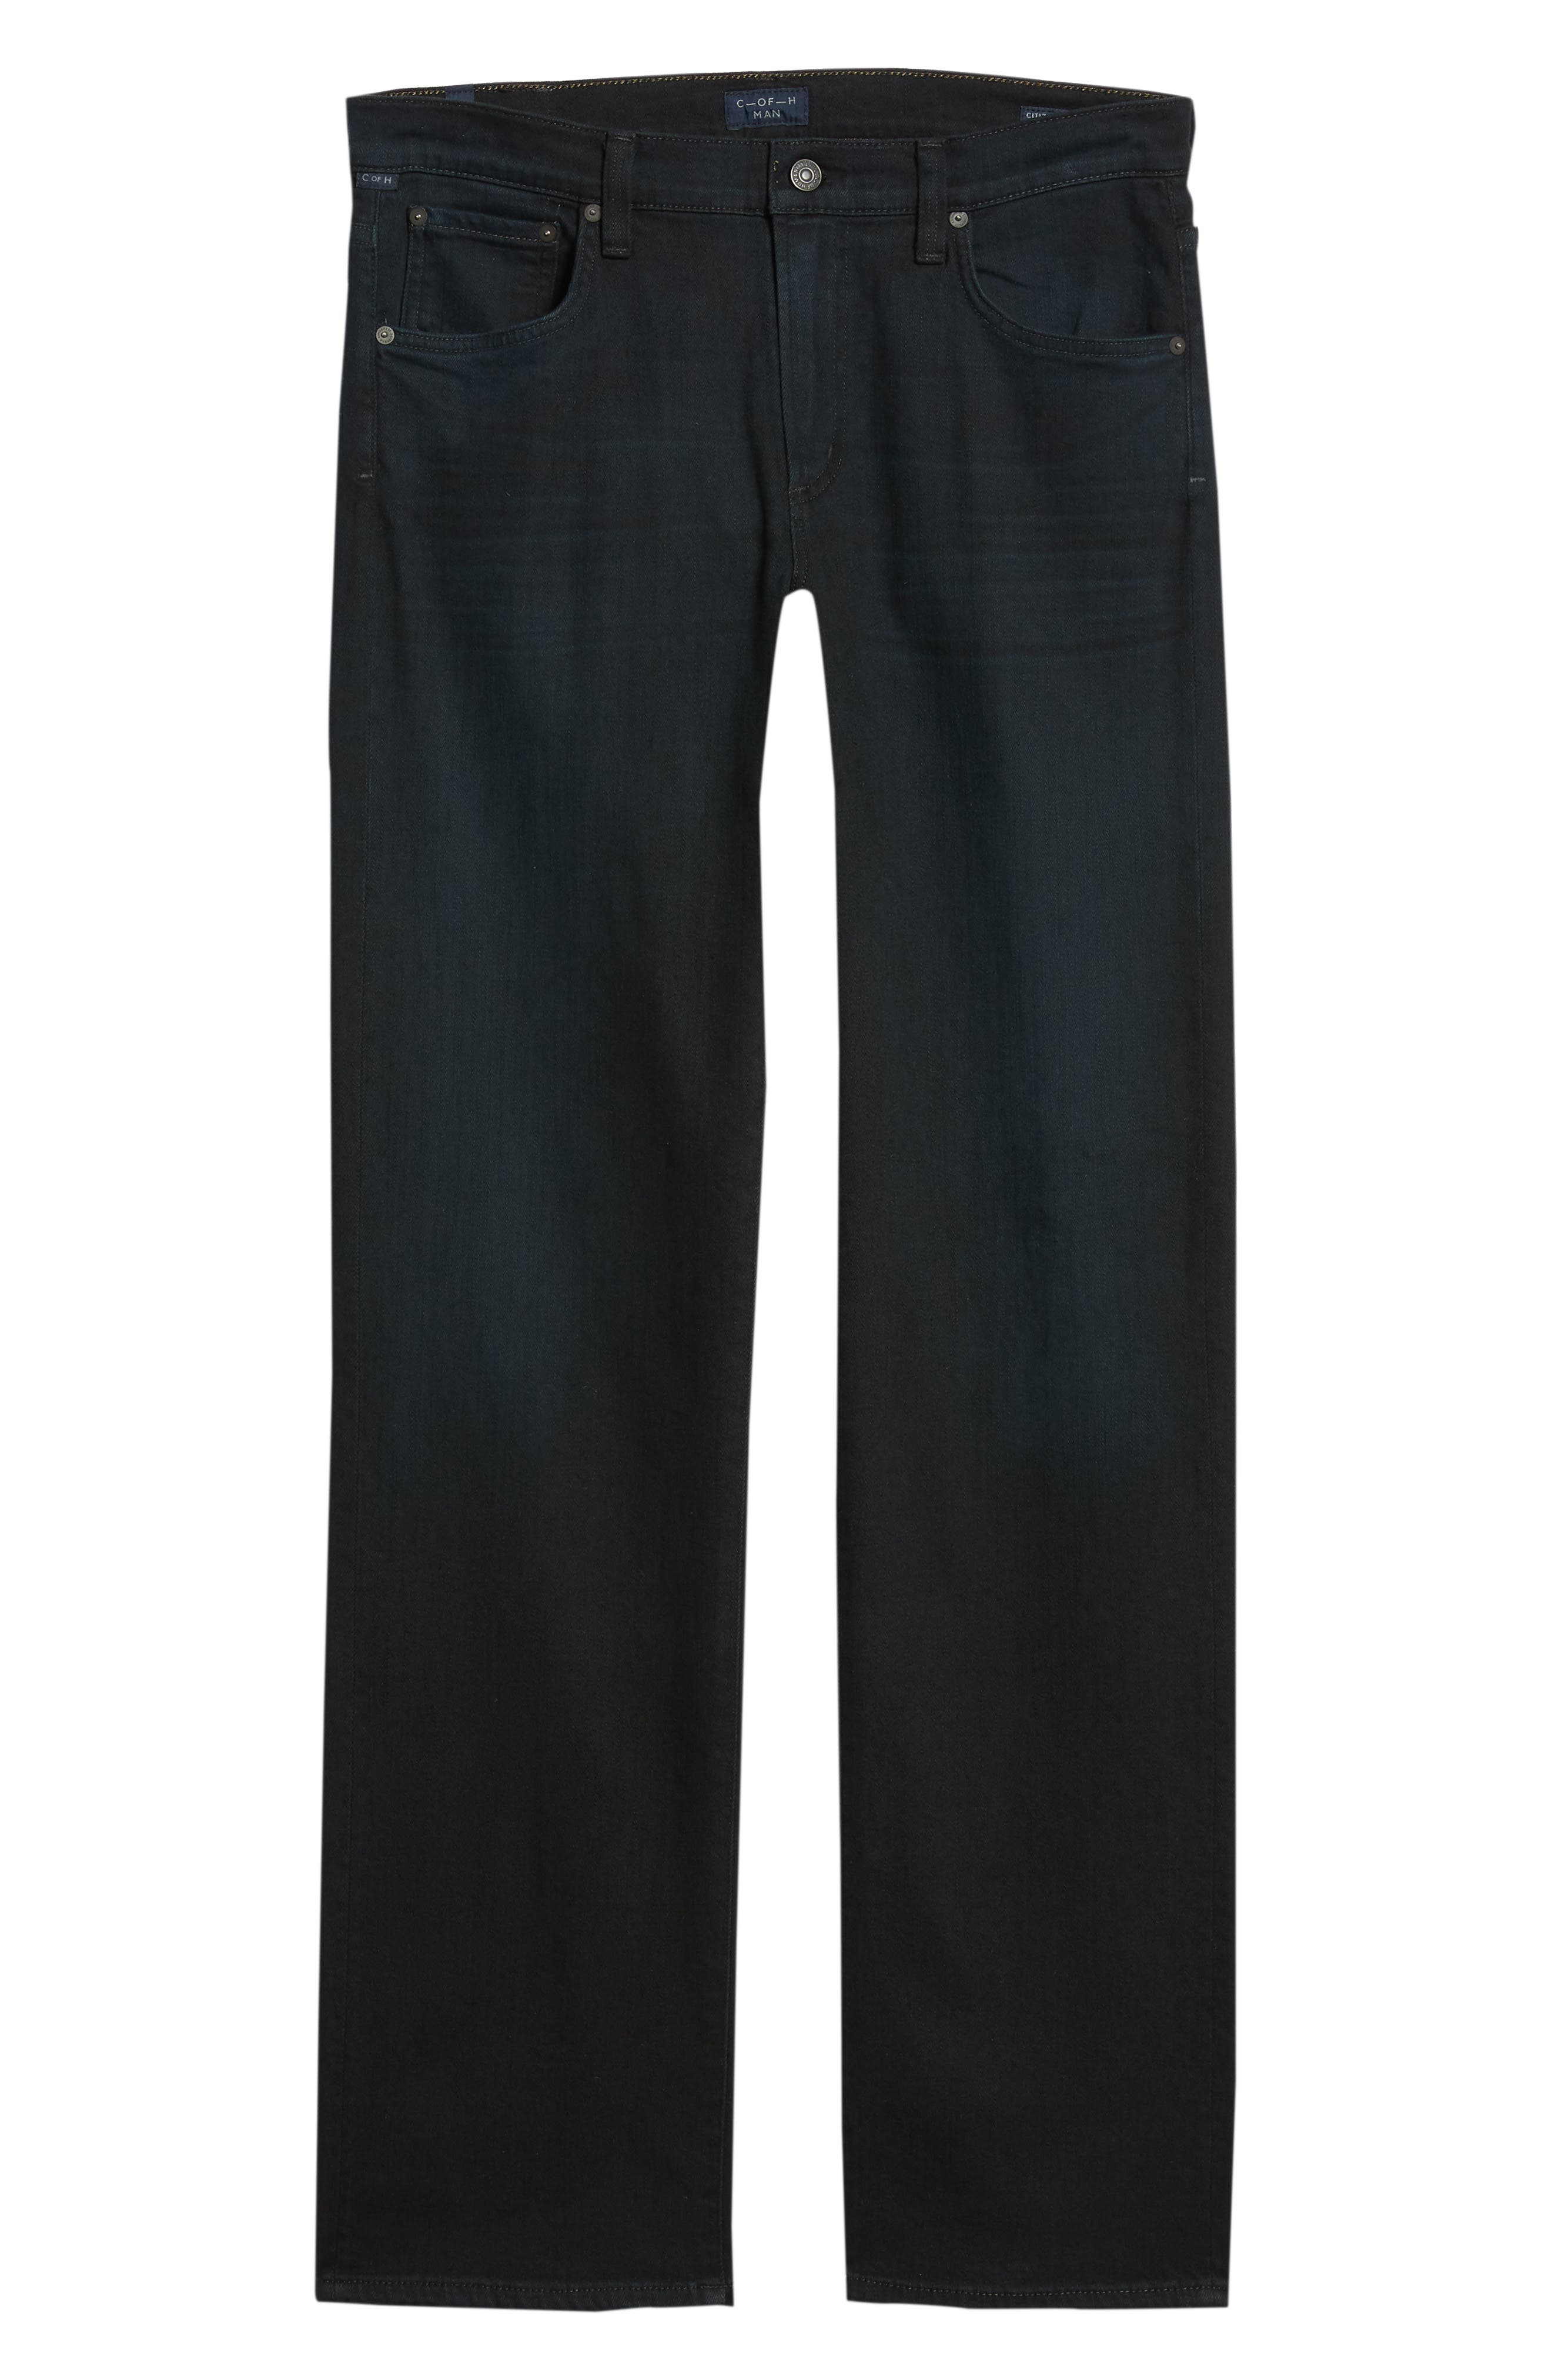 Sid Straight Leg Jeans,                             Alternate thumbnail 6, color,                             STAGE